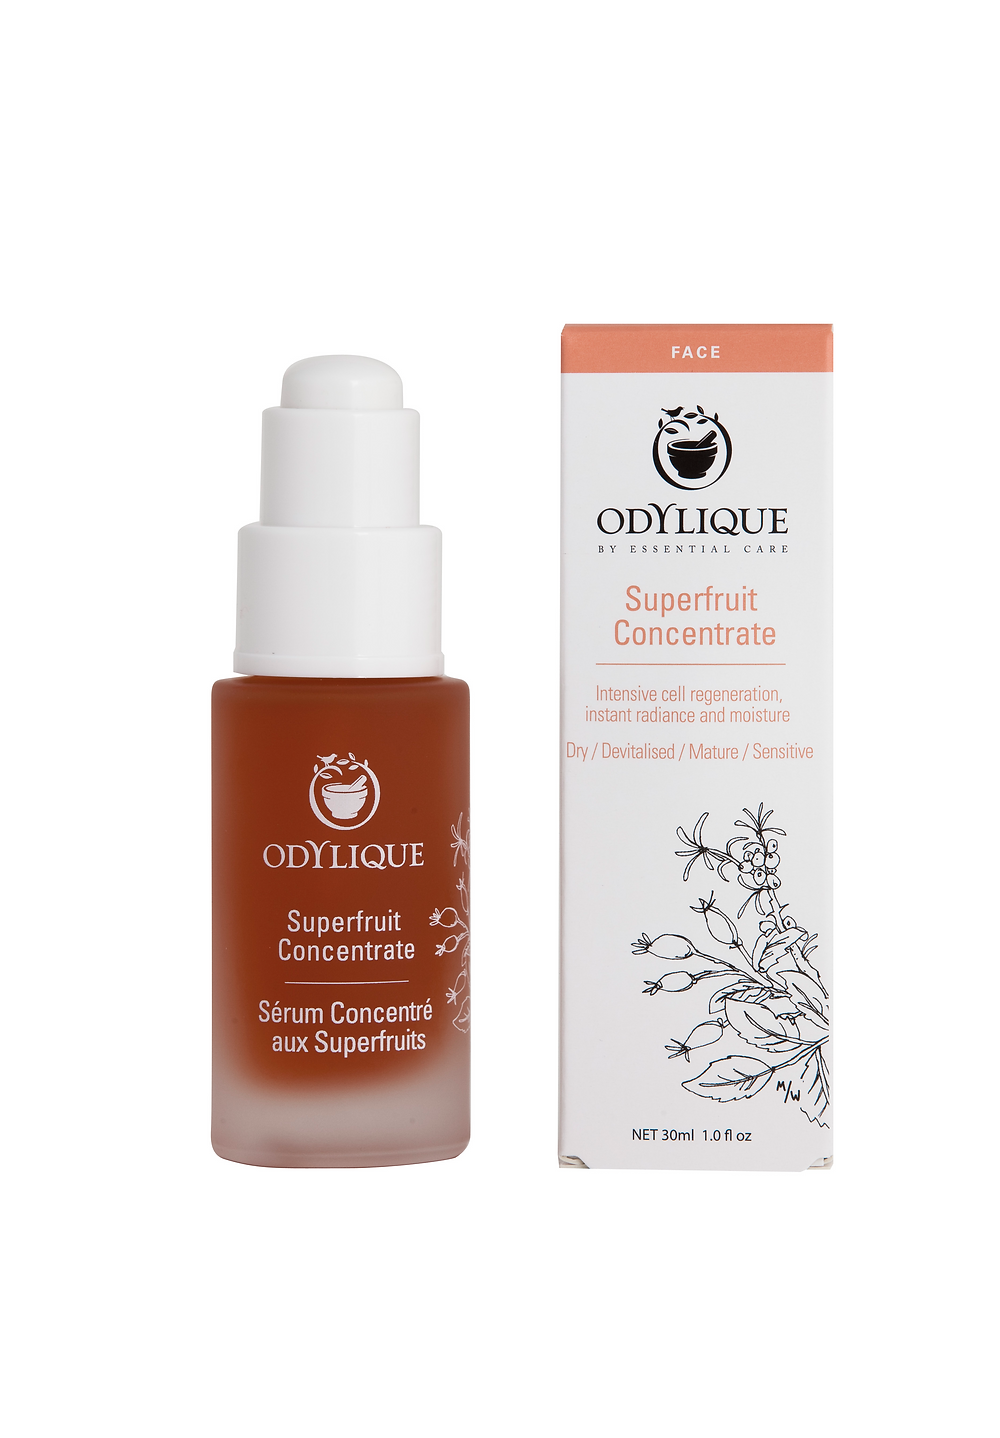 Odylique Superfruit Concentrate Facial Serum